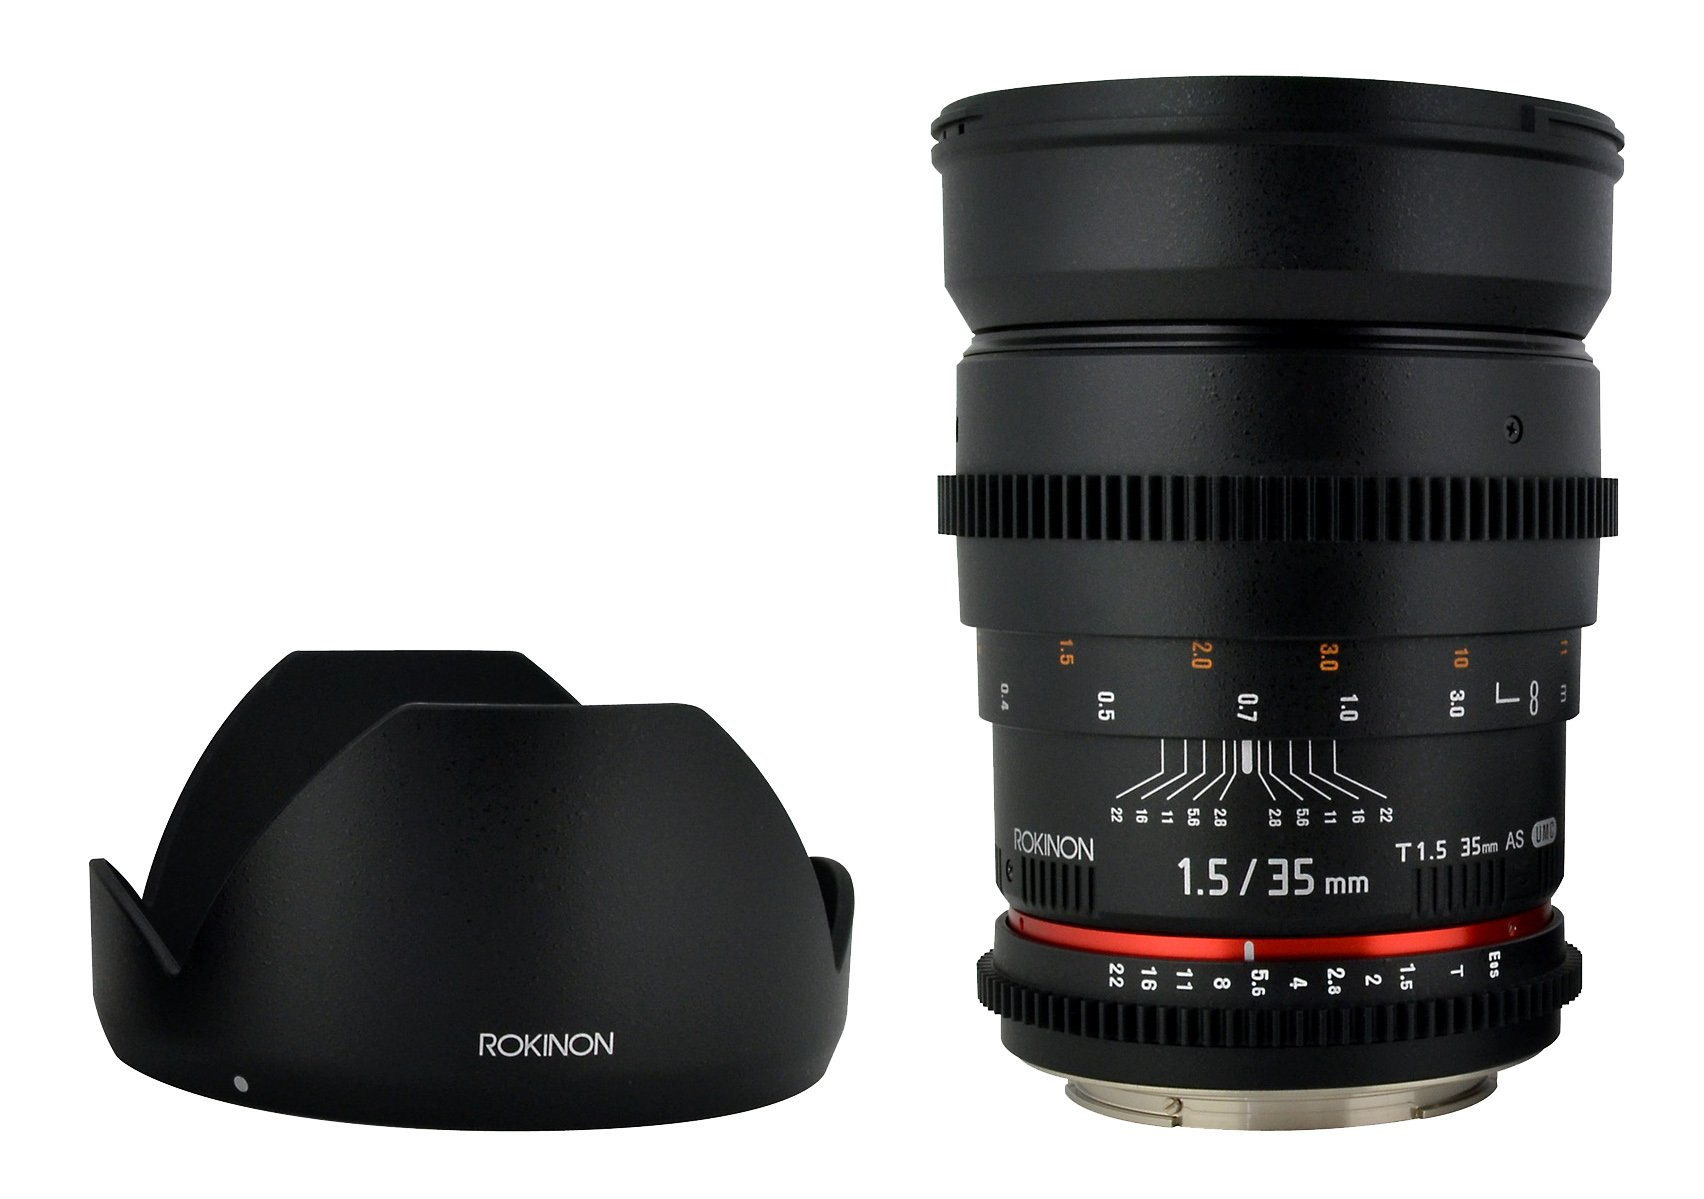 Rokinon Cine CV35-C 35mm T1.5 Aspherical Wide Angle Cine Lens with De-Clicked Aperture for Canon EOS DSLR 35-35mm, Fixed-Non-Zoom Lens by Rokinon (Image #2)